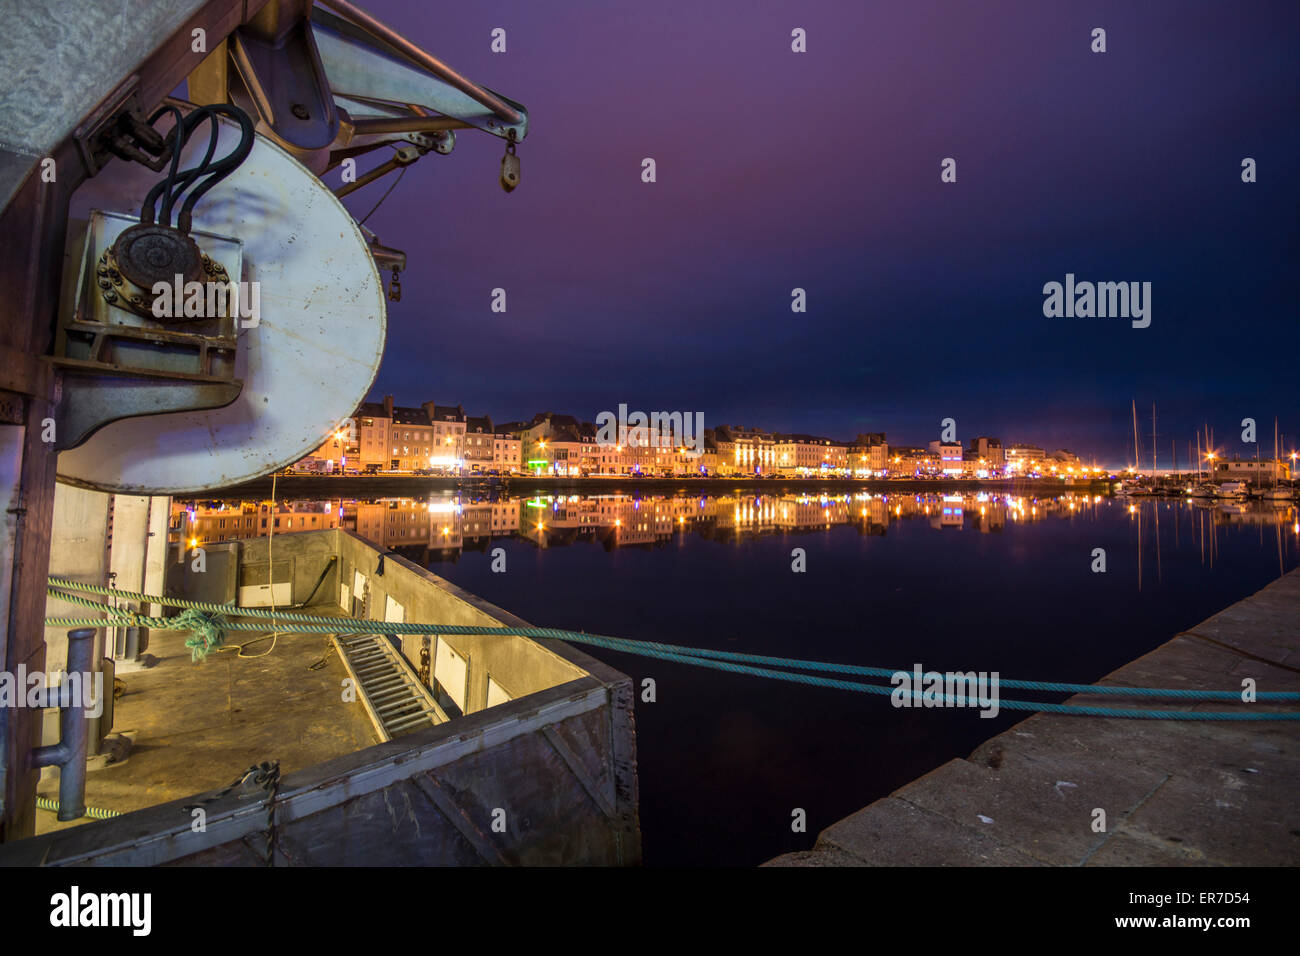 Cherbourg, France. the Back of a fishing boat anchored at the lagoon at night. Lit buildings and evening sky in - Stock Image